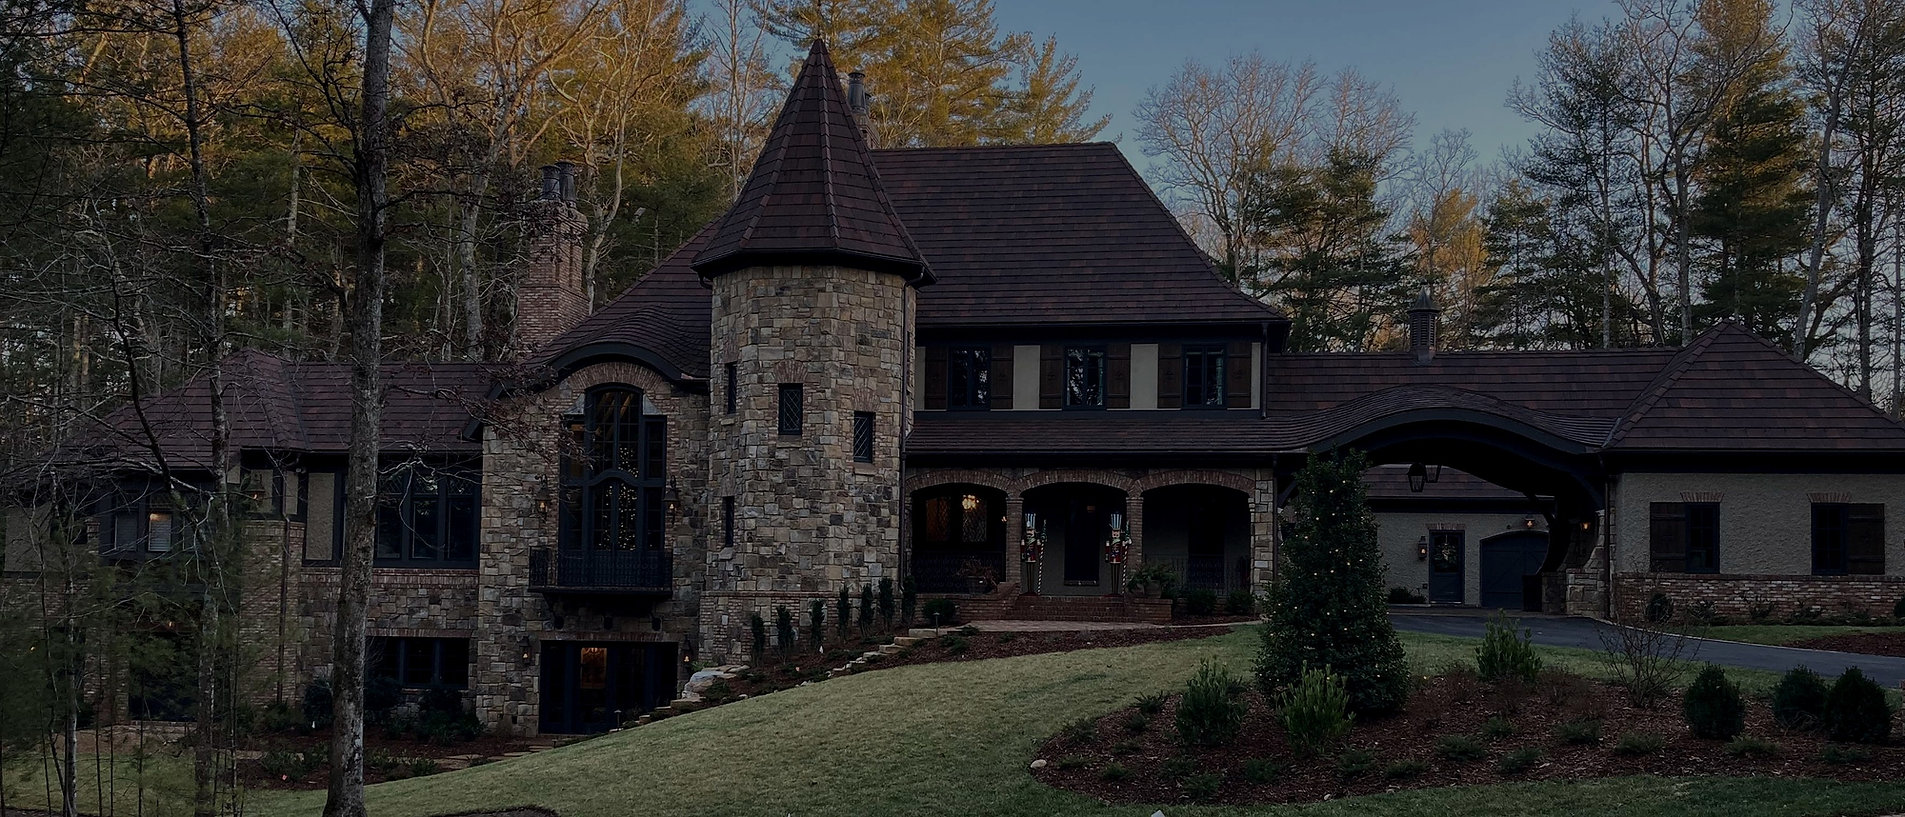 Home Theater in Atlanta GA includes Home Automation, lighting control, Surround sound system, Access control and integration